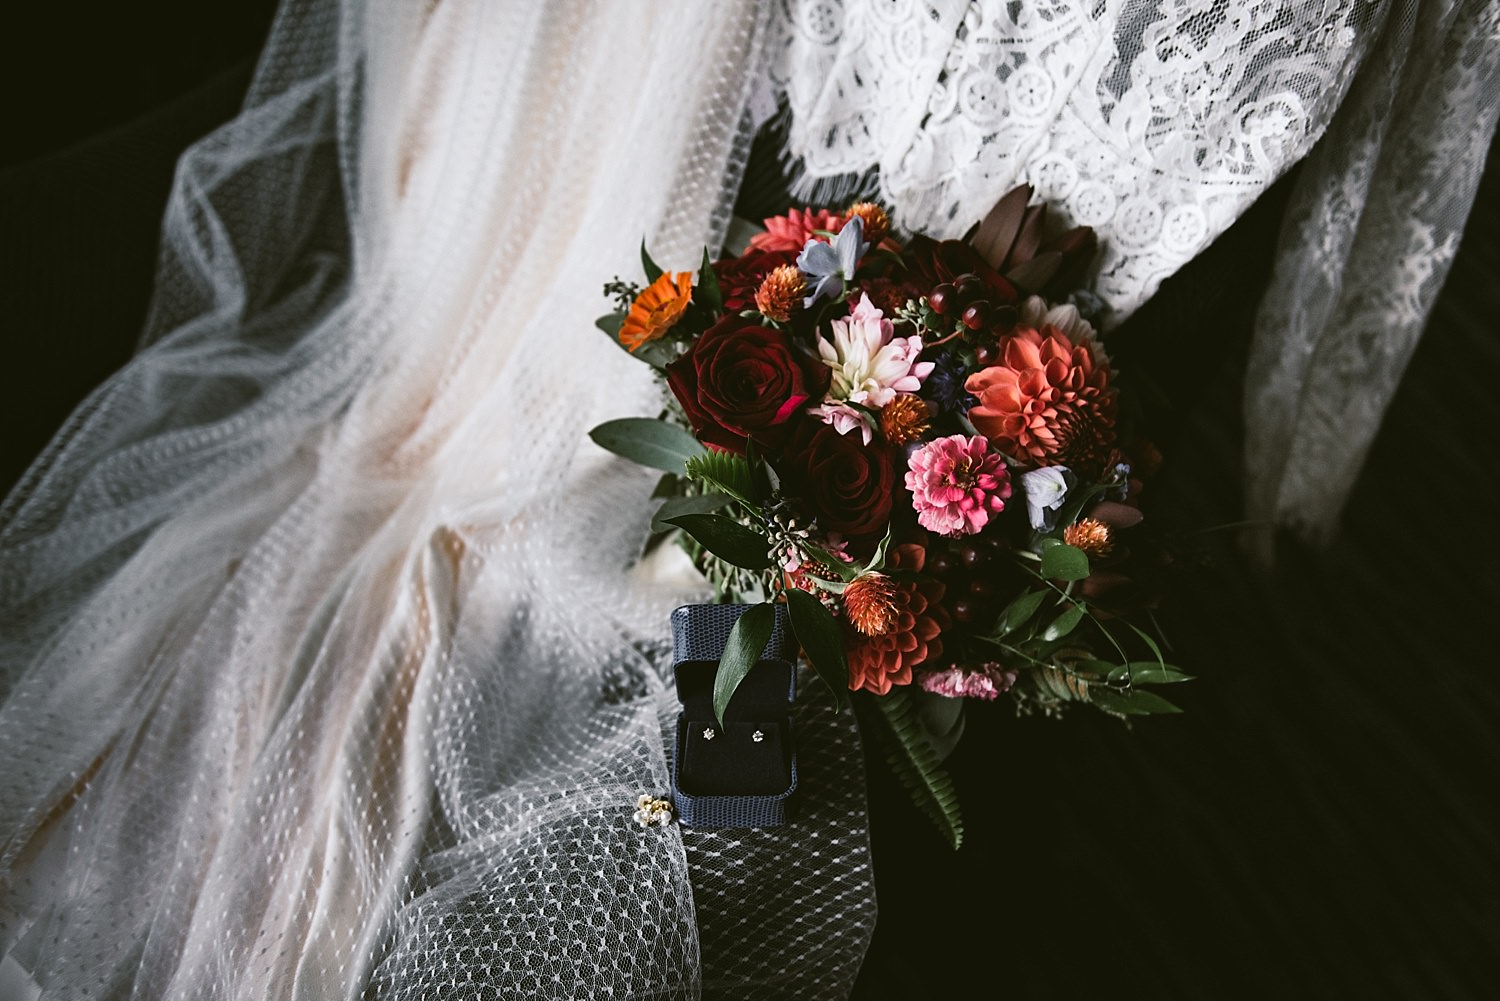 Wedding dress and Flowers